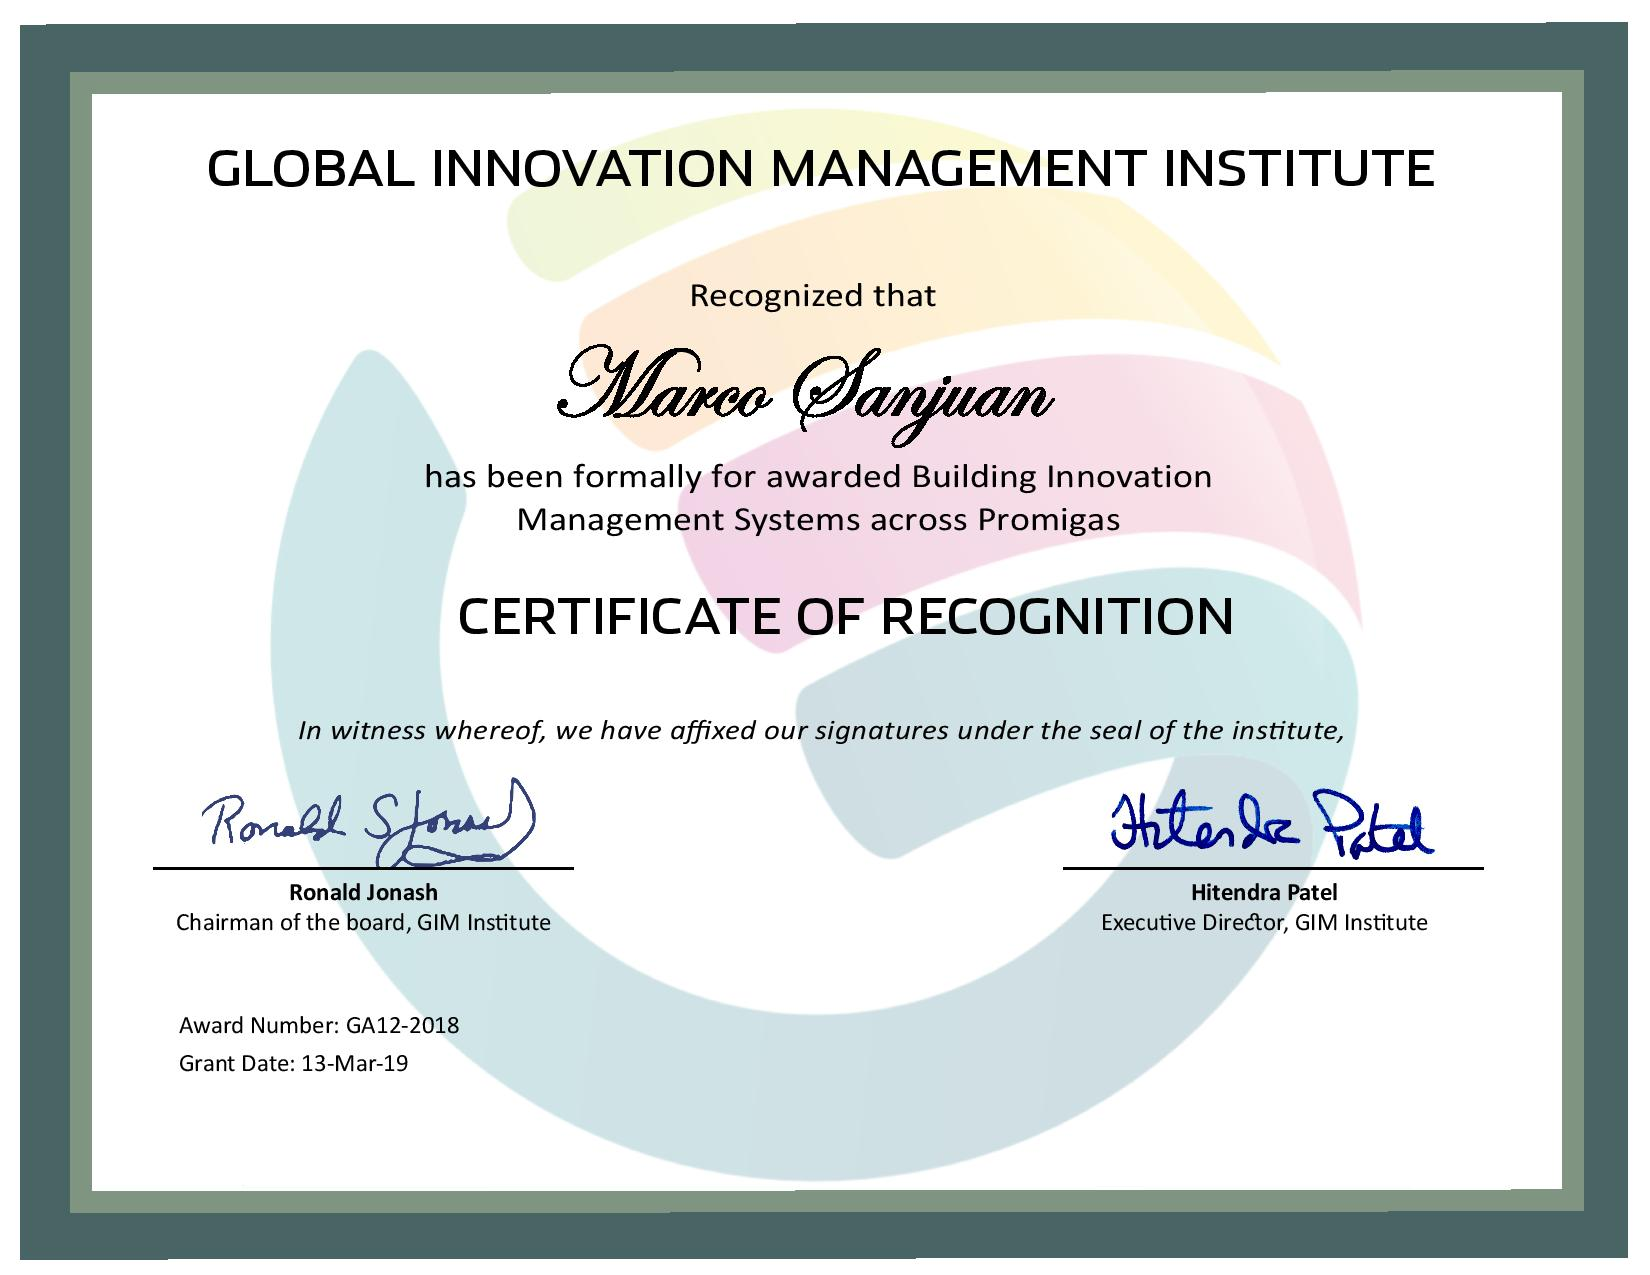 for Building Innovation Management Systems across Promigas